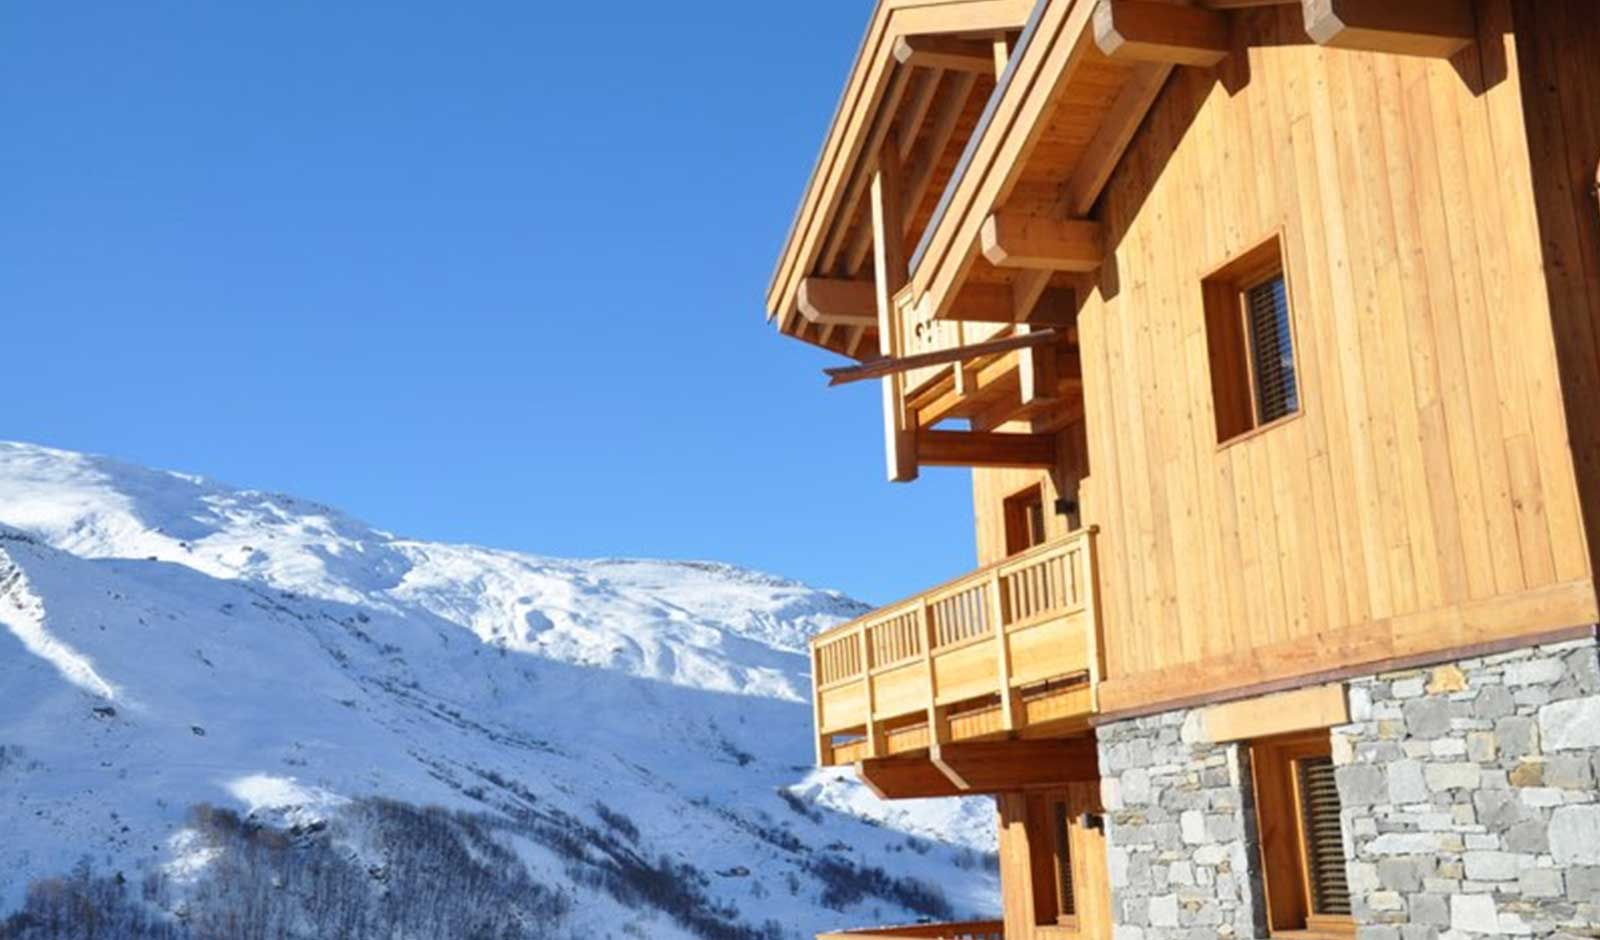 chalet-iselime-1-atelier-crea-and-co-architecte-design-project-manager-meribel-savoie